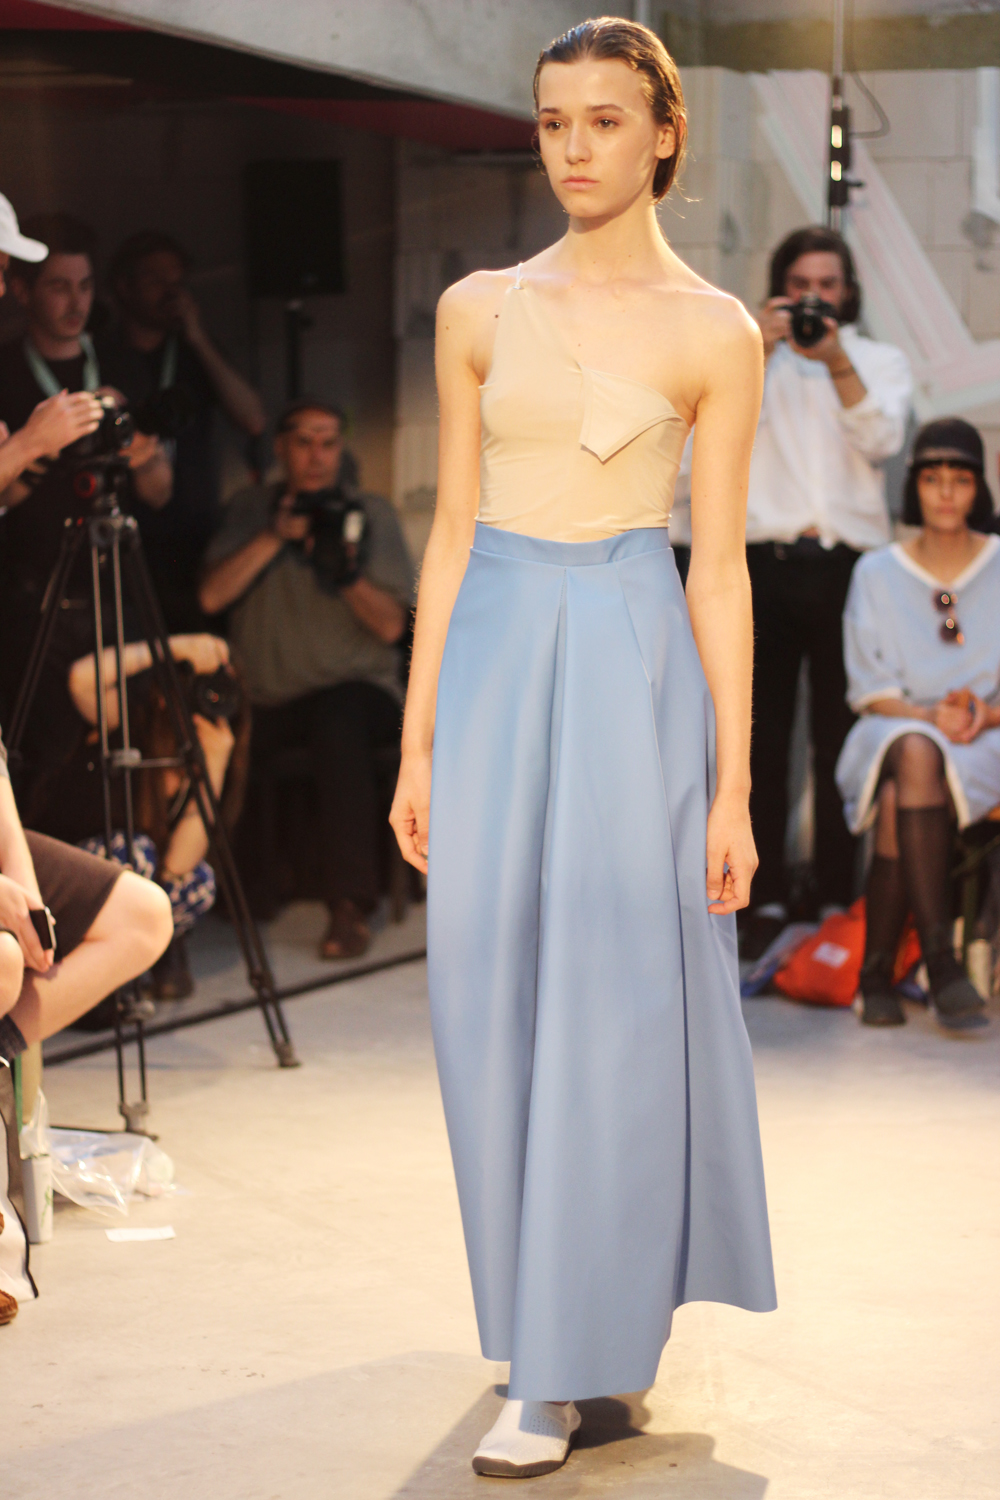 fatimayarie-berlinfashionweek-samplecm-runway-blue-marlenepants-img_4061